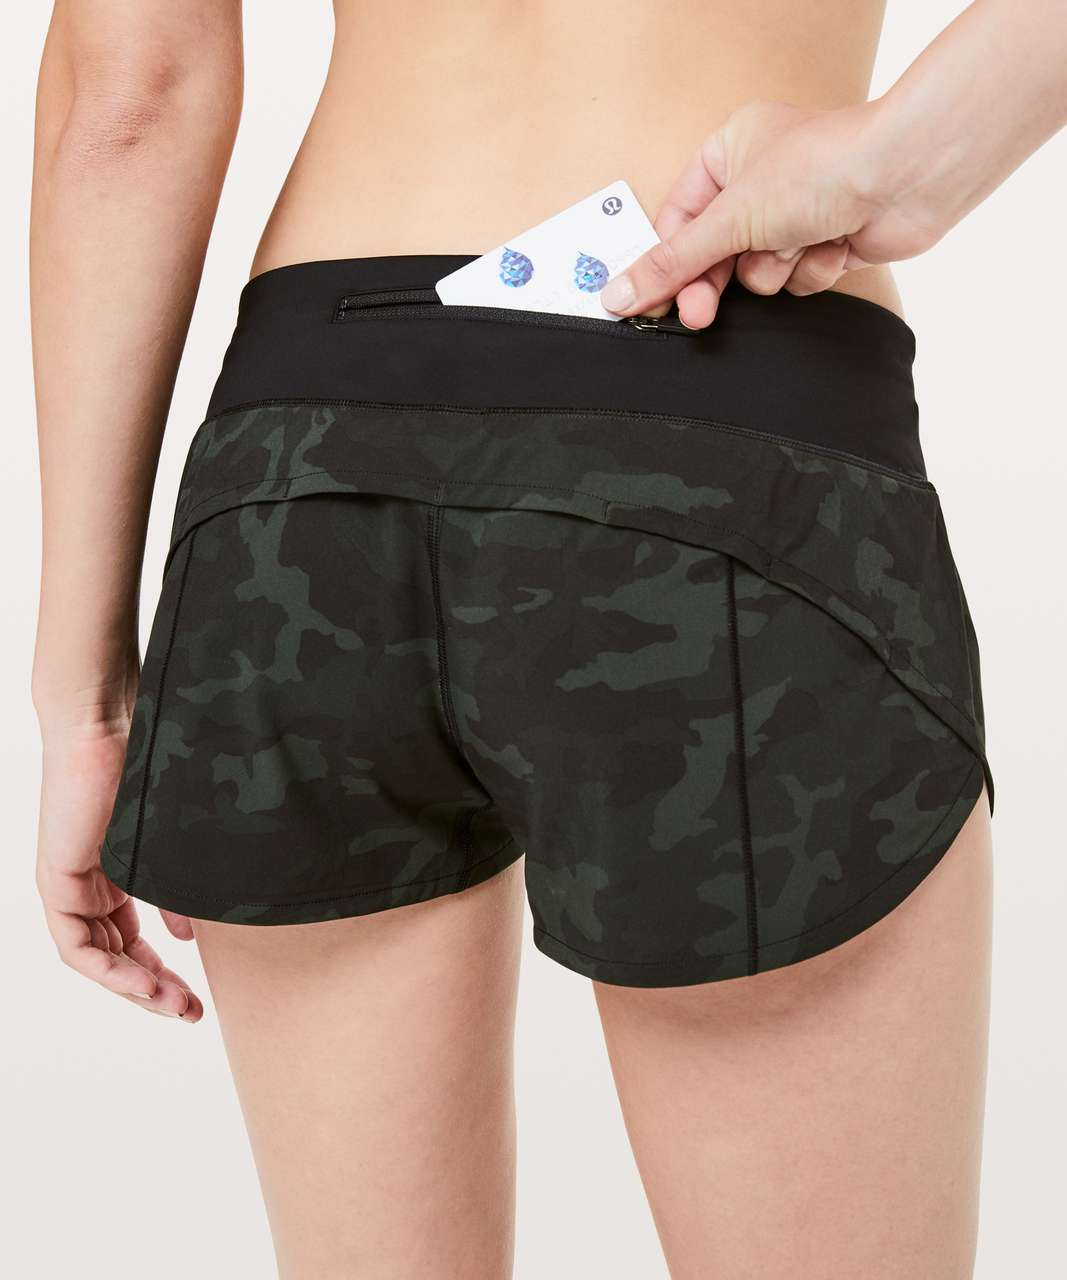 "Lululemon Speed Up Short *2.5"" - Incognito Camo Multi Gator Green / Black"